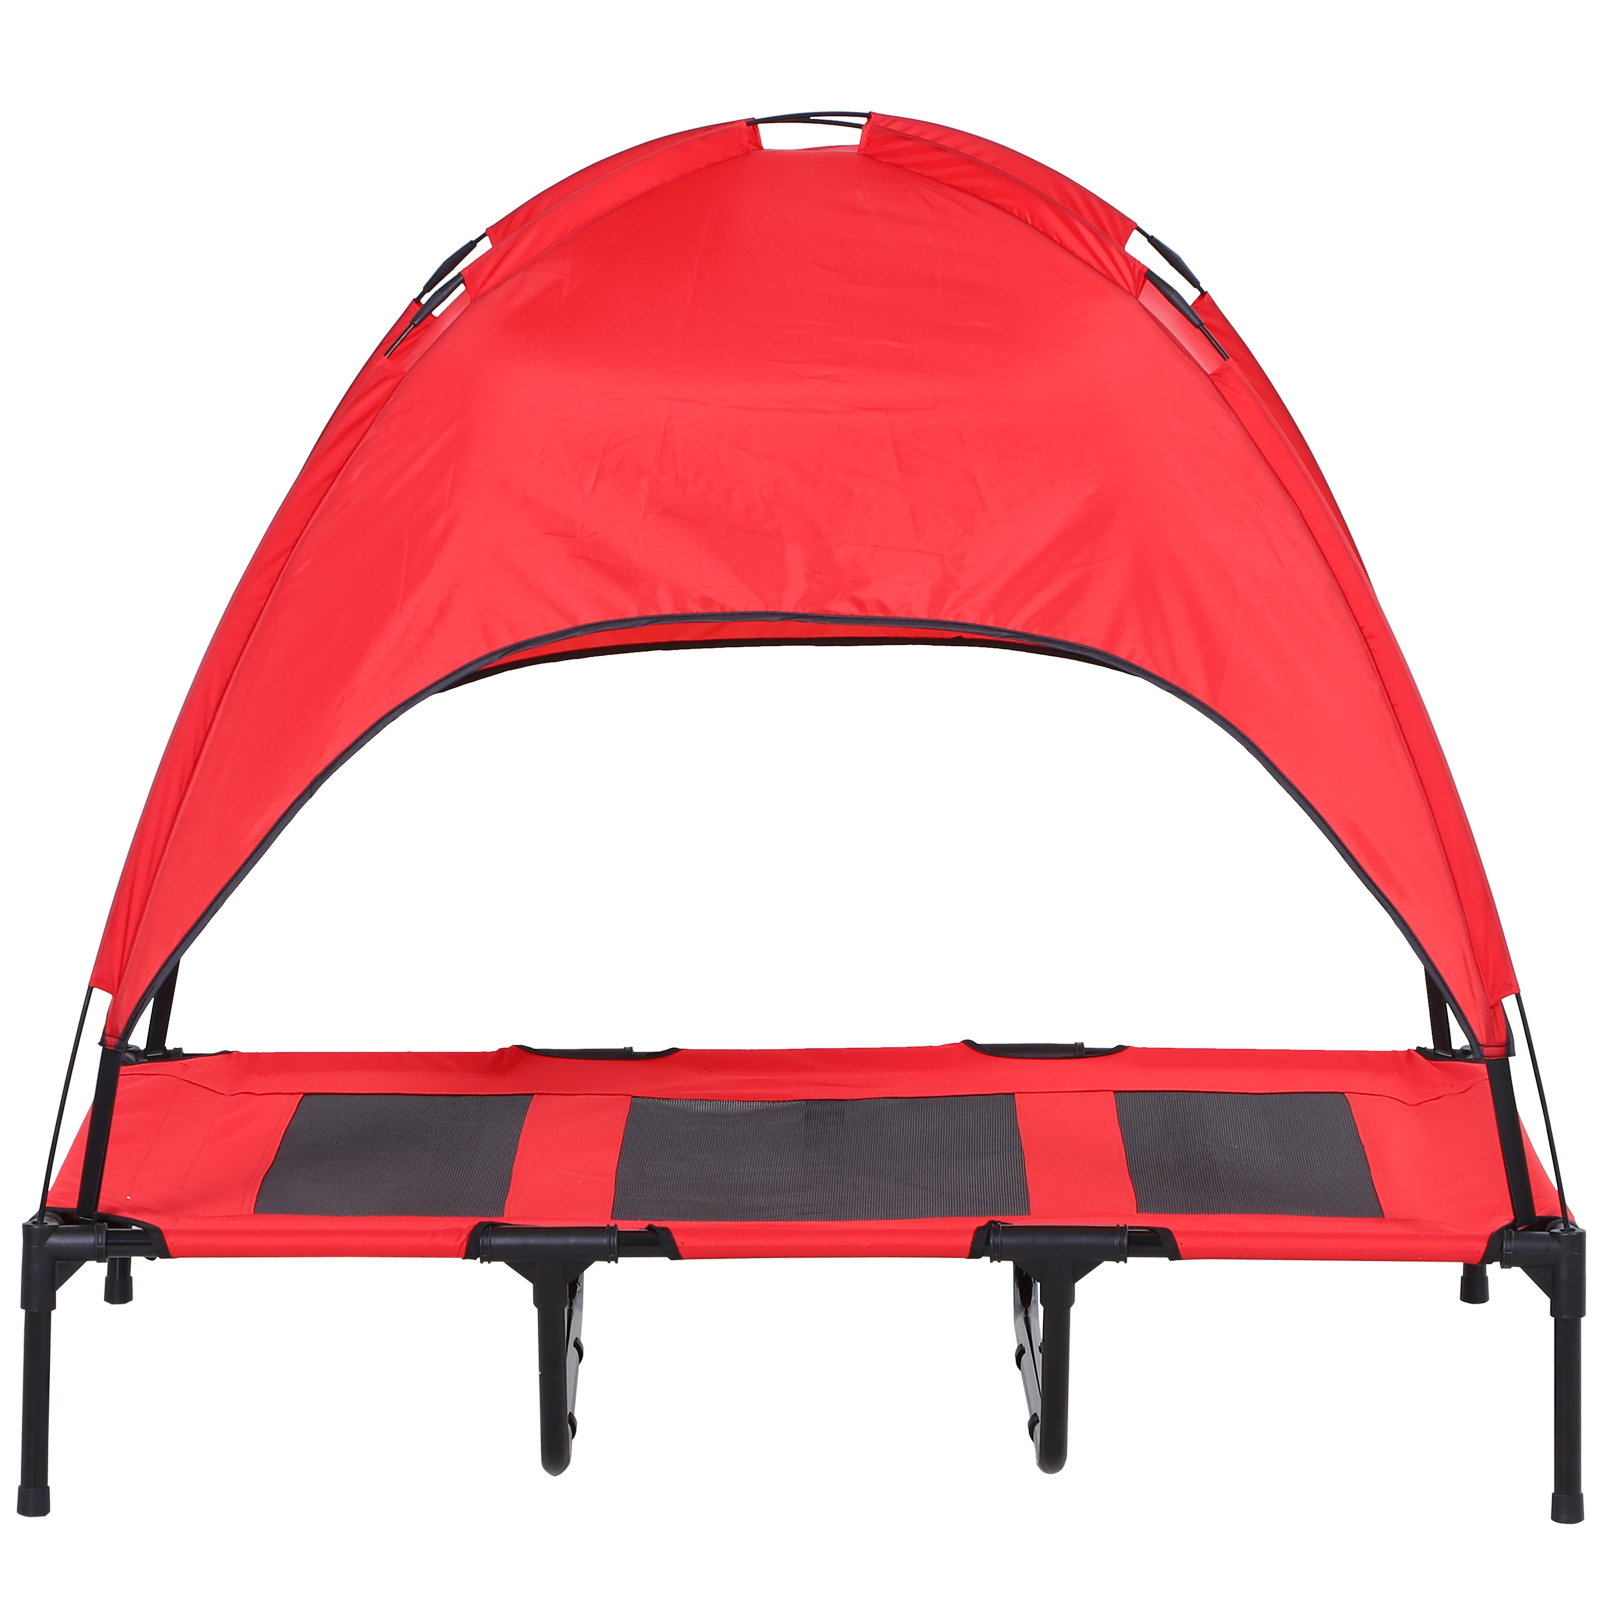 PawHut-Elevated-Pet-Bed-Dog-Foldable-Cot-Tent-Canopy thumbnail 18